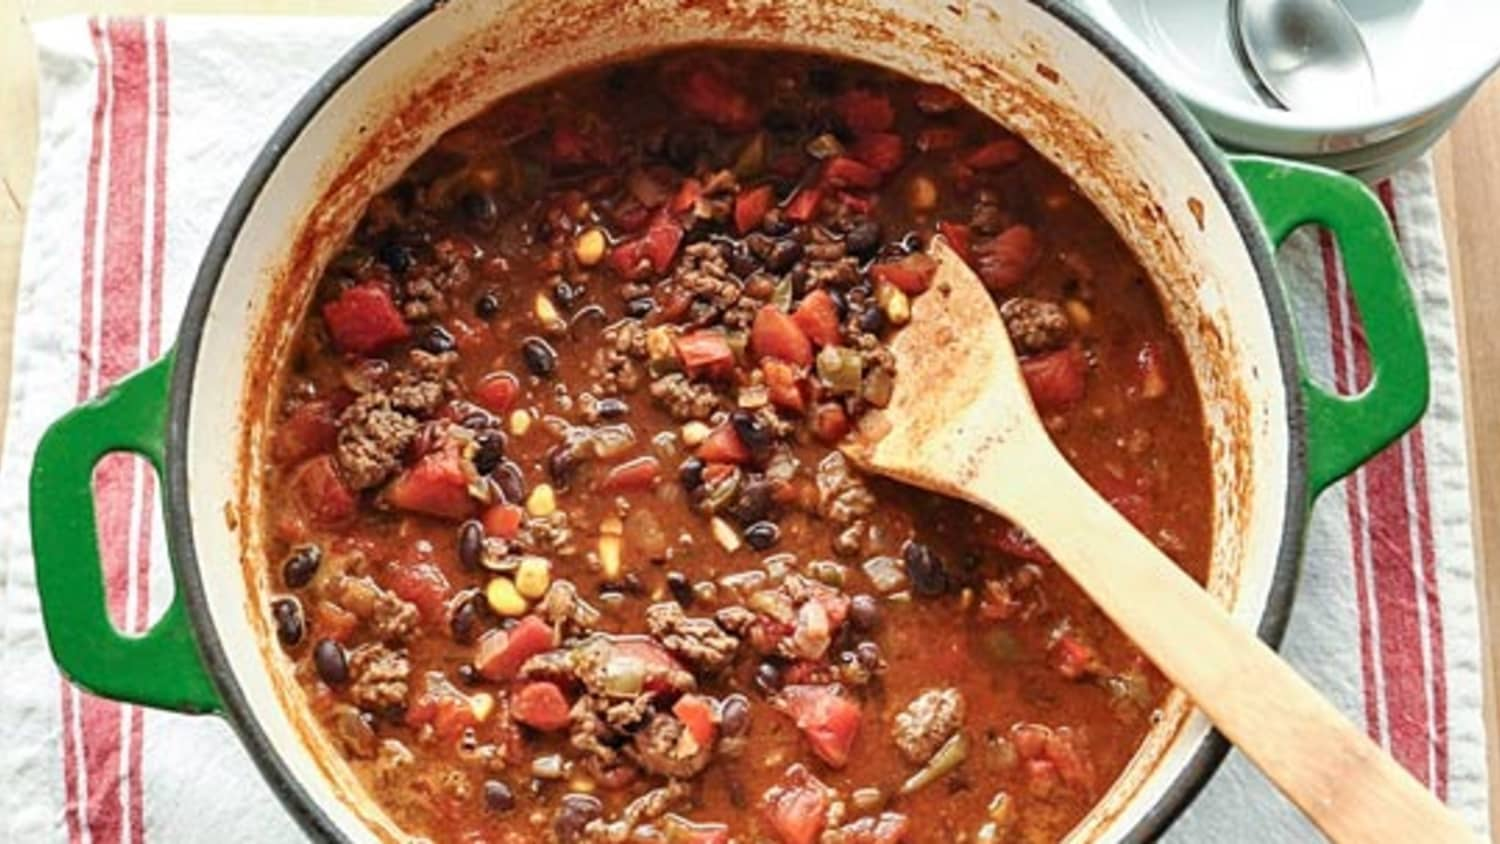 How to Make a Very Good Chili